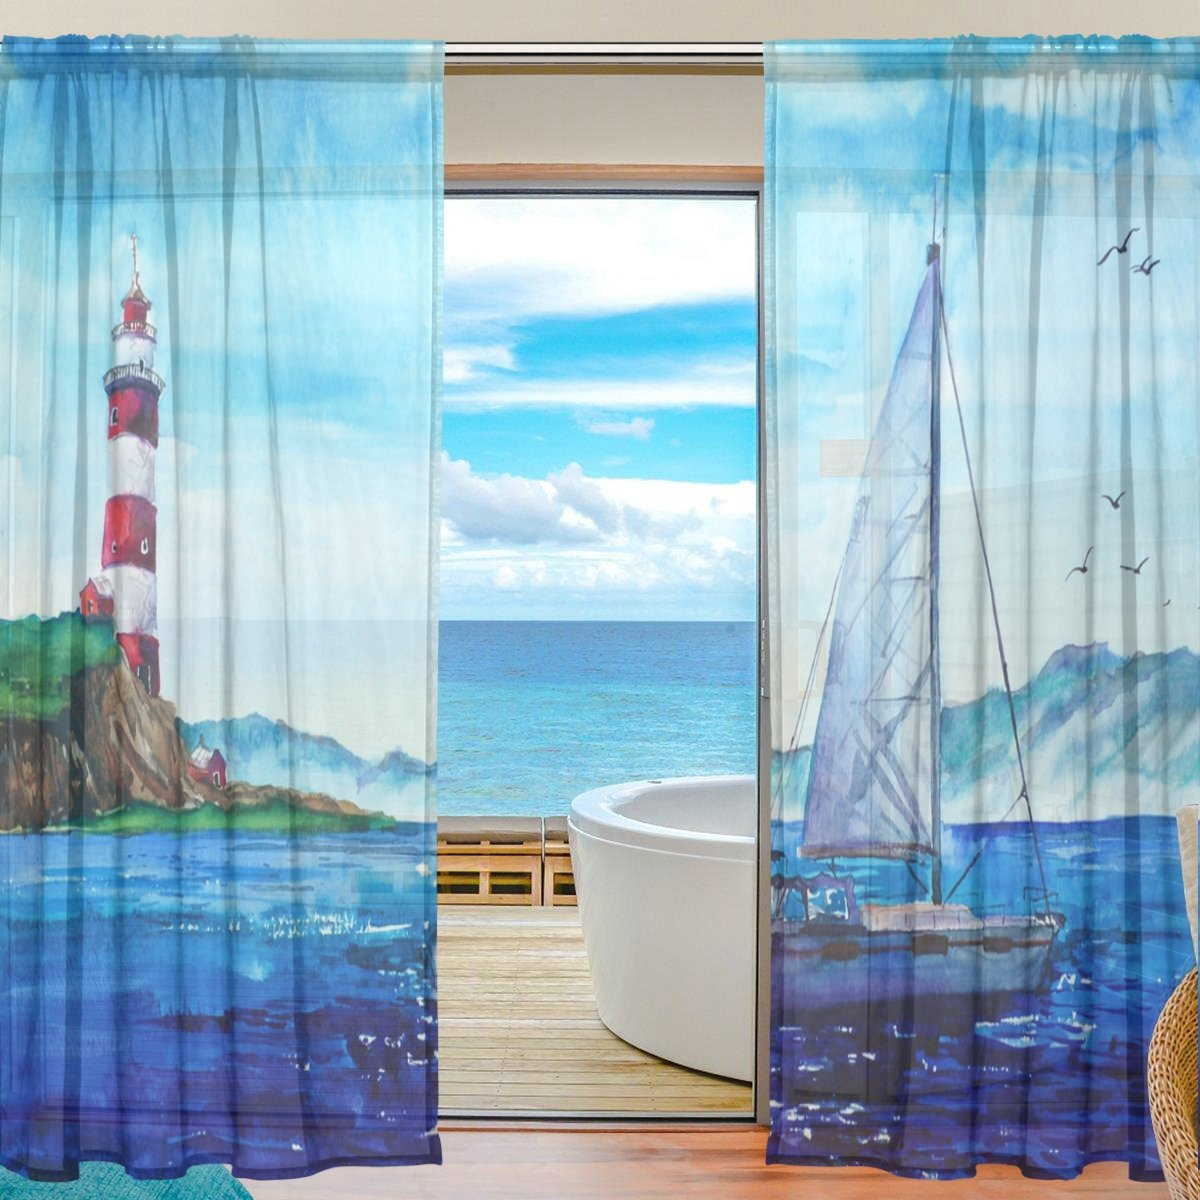 SEULIFE Window Sheer Curtain, Ocean Sea Lighthouse Ship Voile Curtain Drapes for Door Kitchen Living Room Bedroom 55x84 inches 2 Panels by SEULIFE